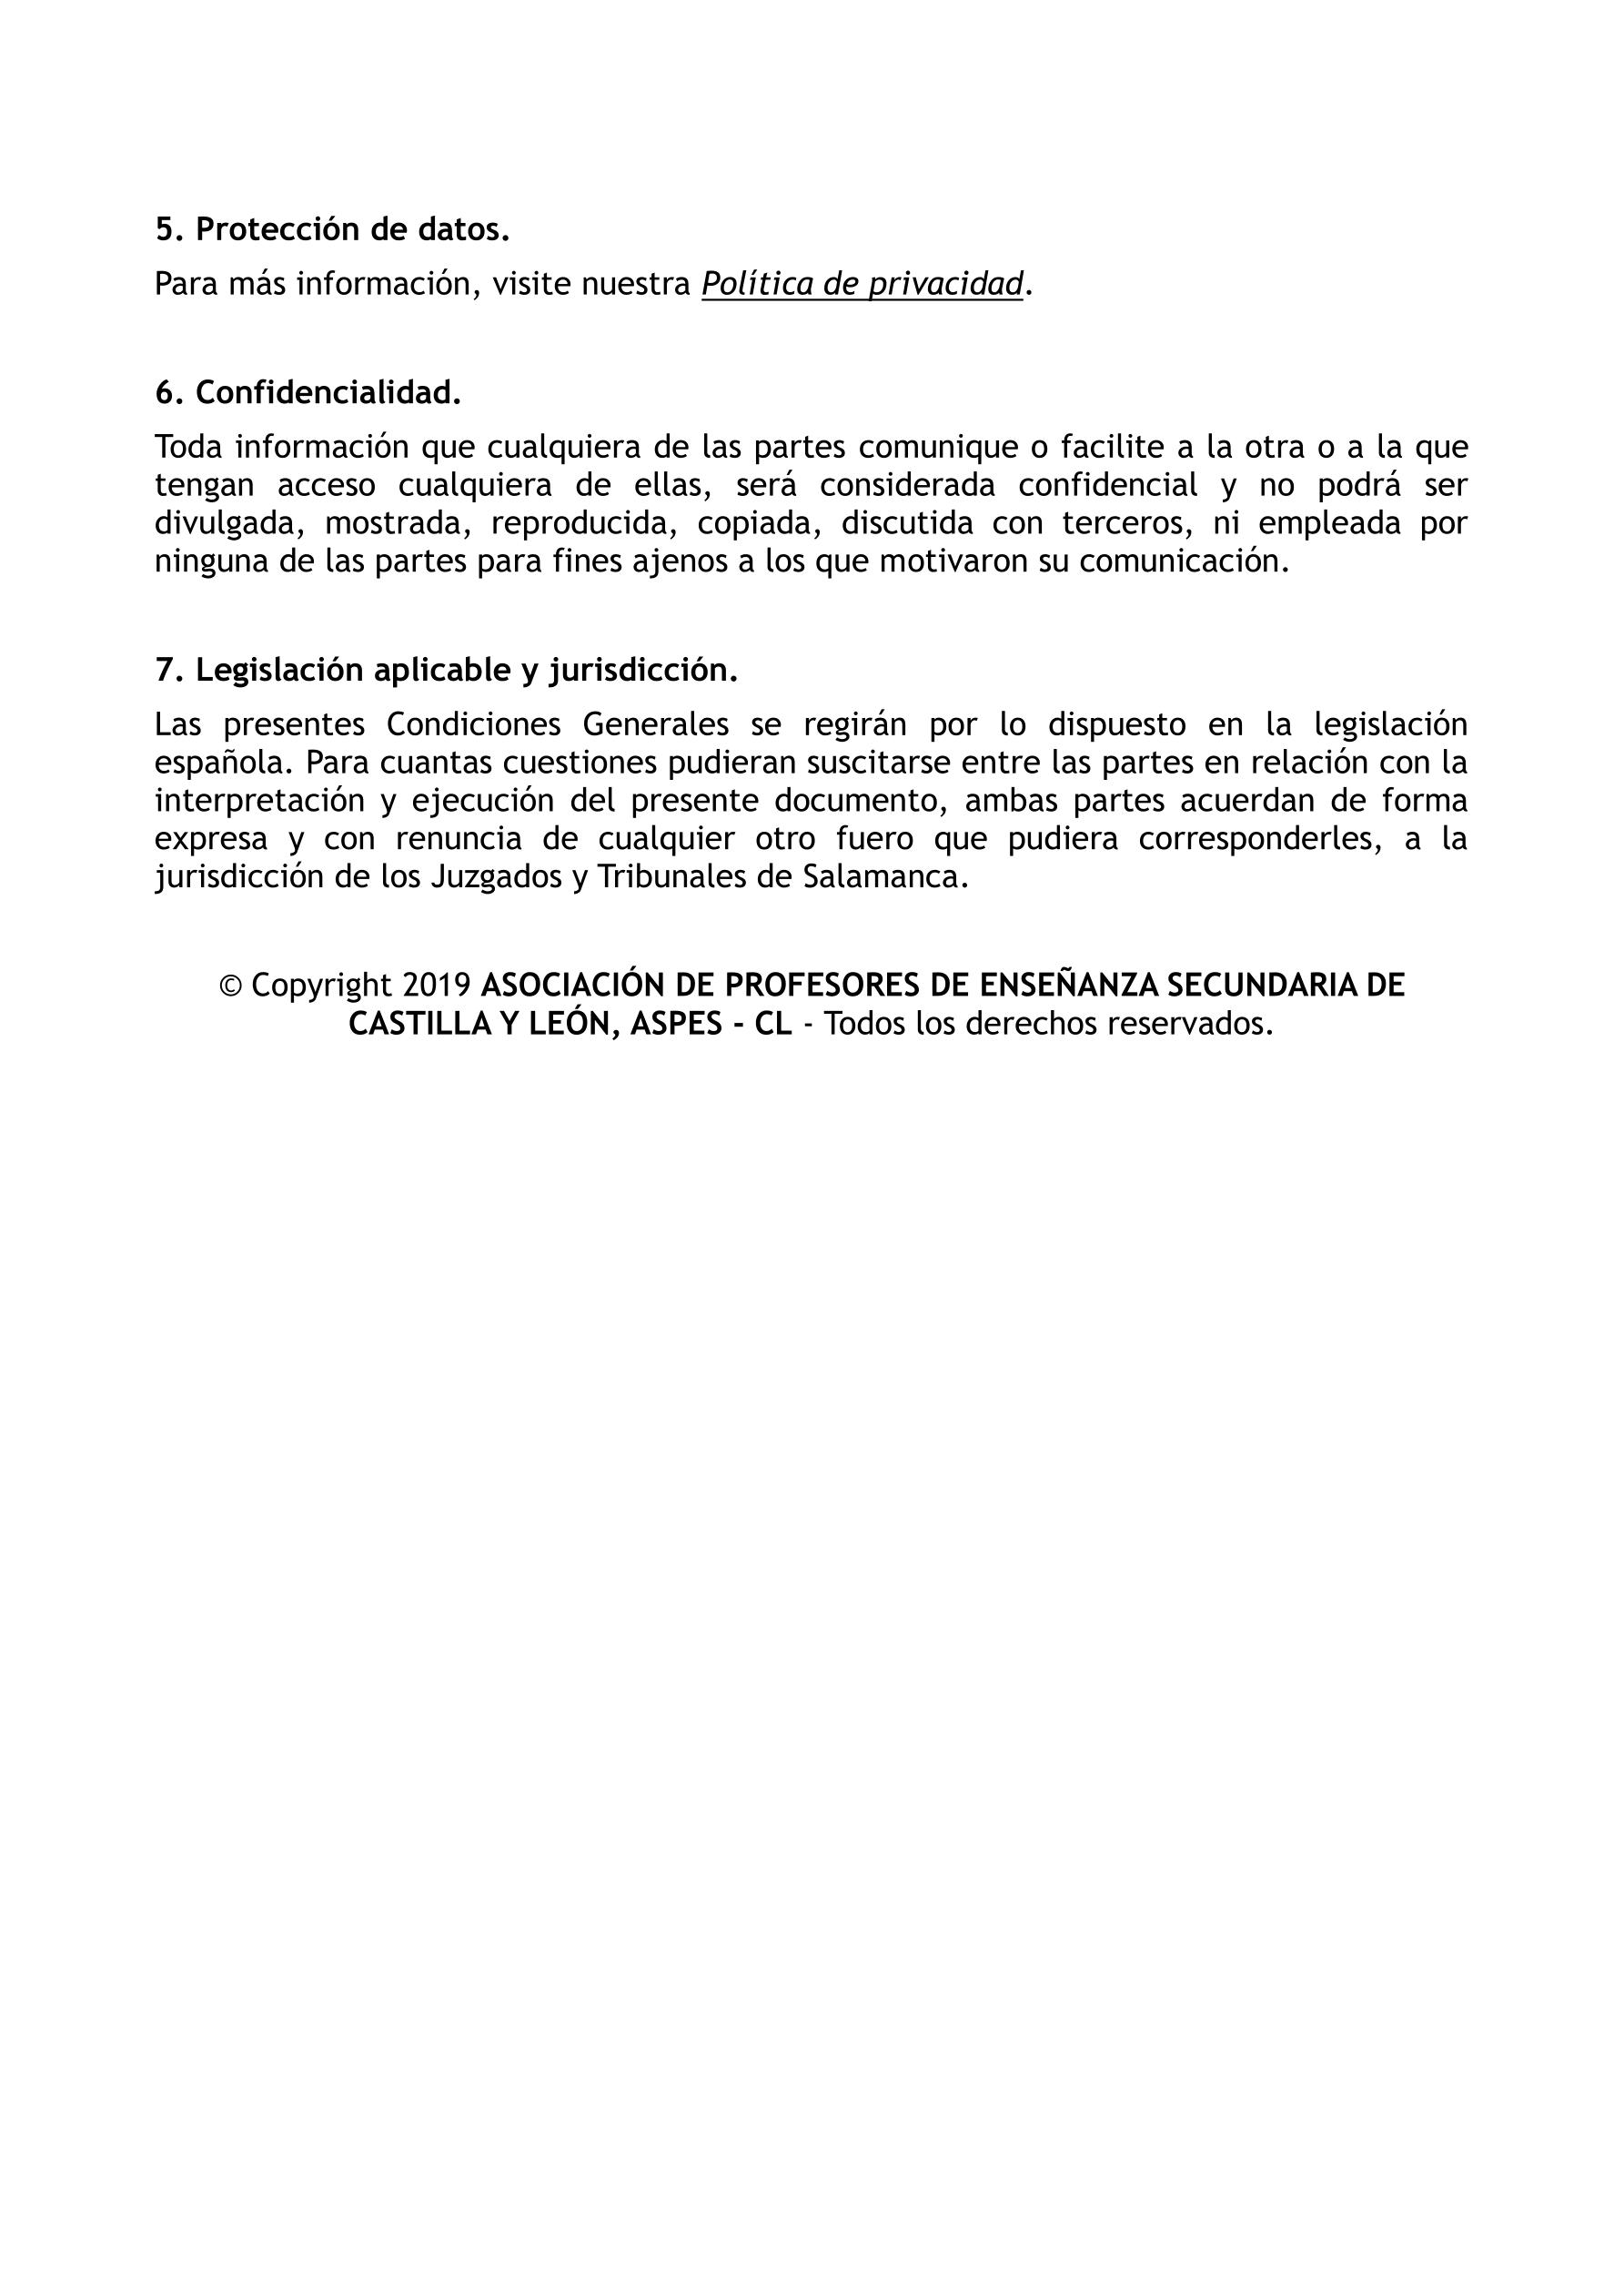 Aviso legal ASPES 2019 3